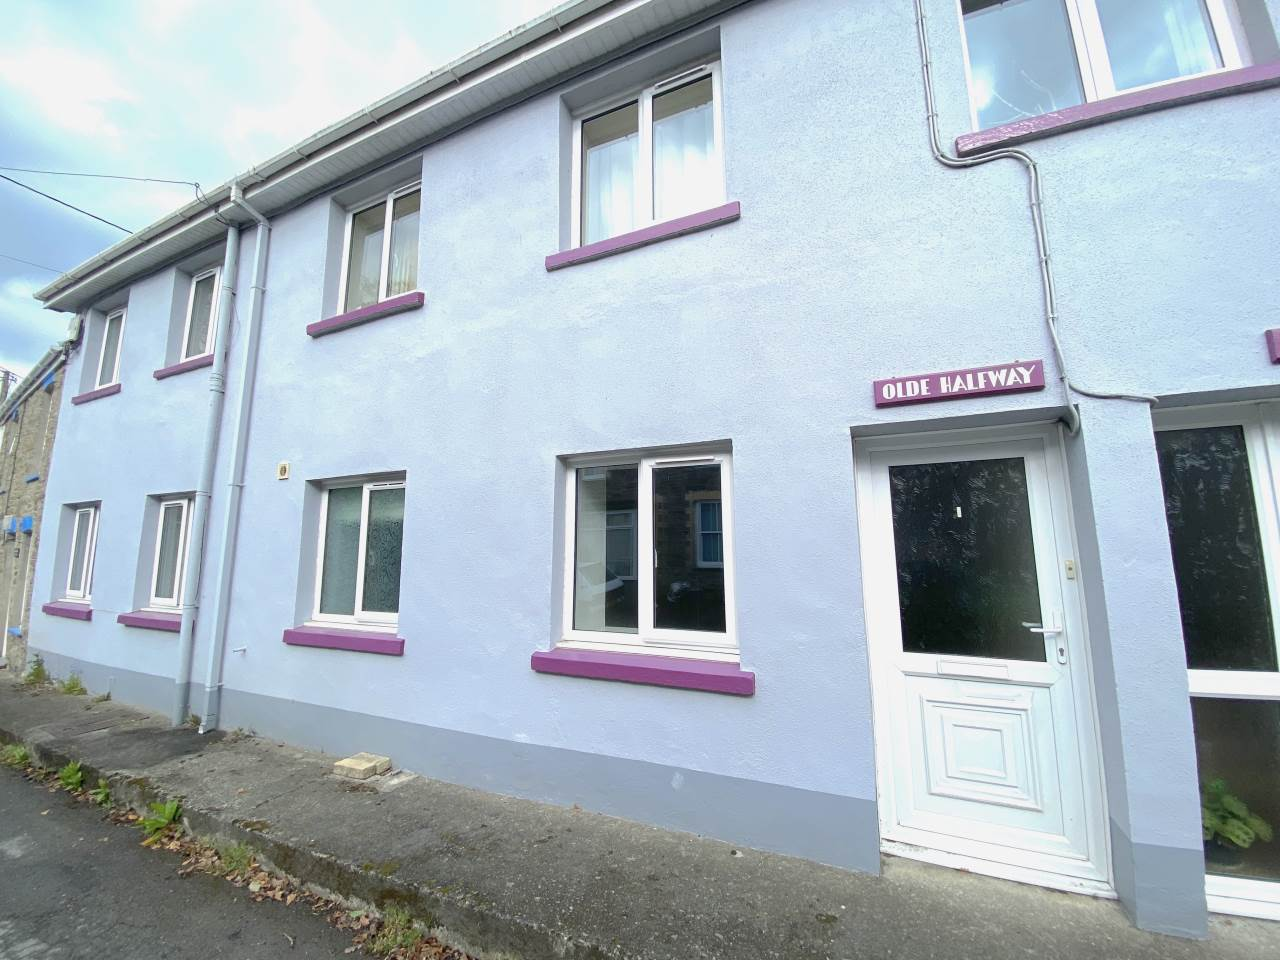 2 bed flat to rent in Halfway, Tre'r Ddol - Property Image 1